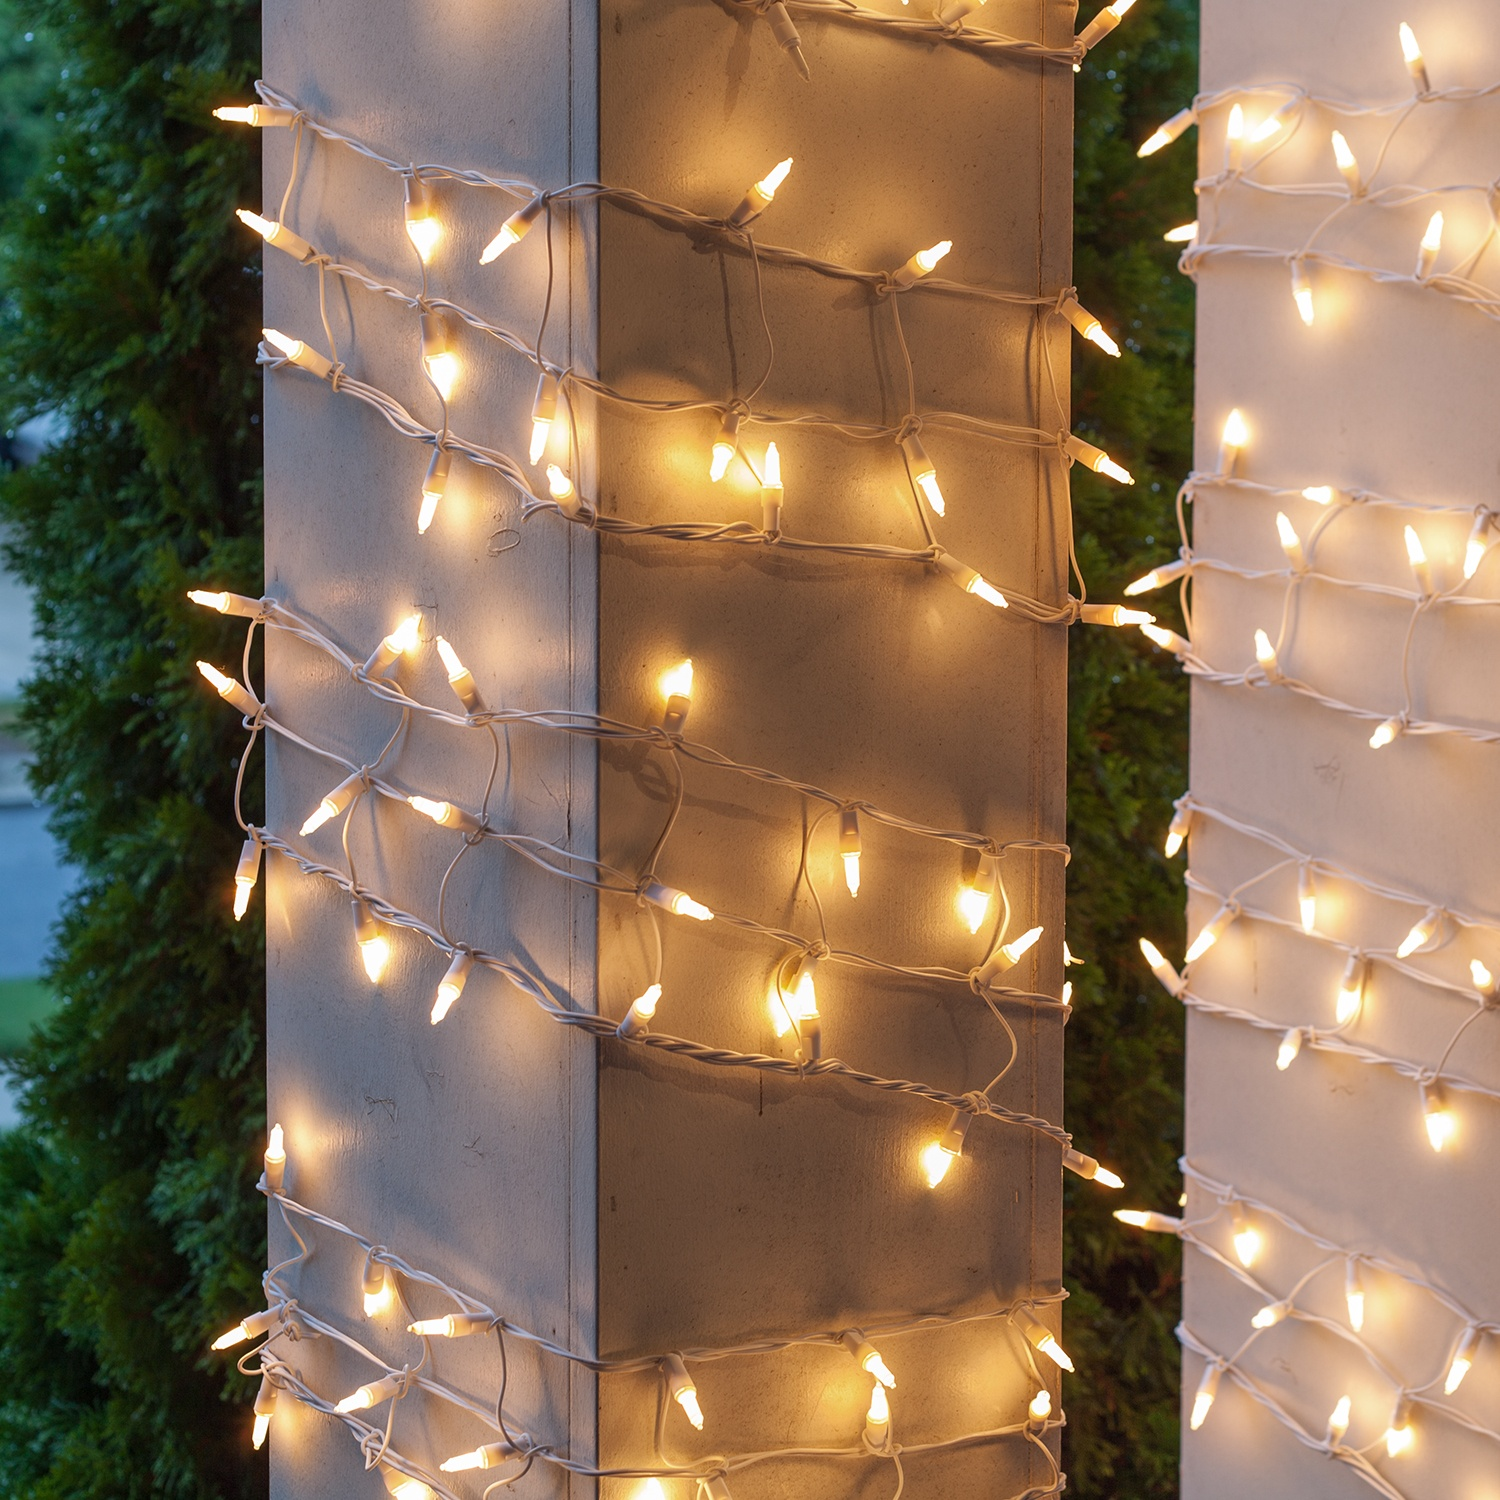 christmas net lights 6 w x 15 h column wrap 150 white frost lights white wire - Christmas Column Decorations